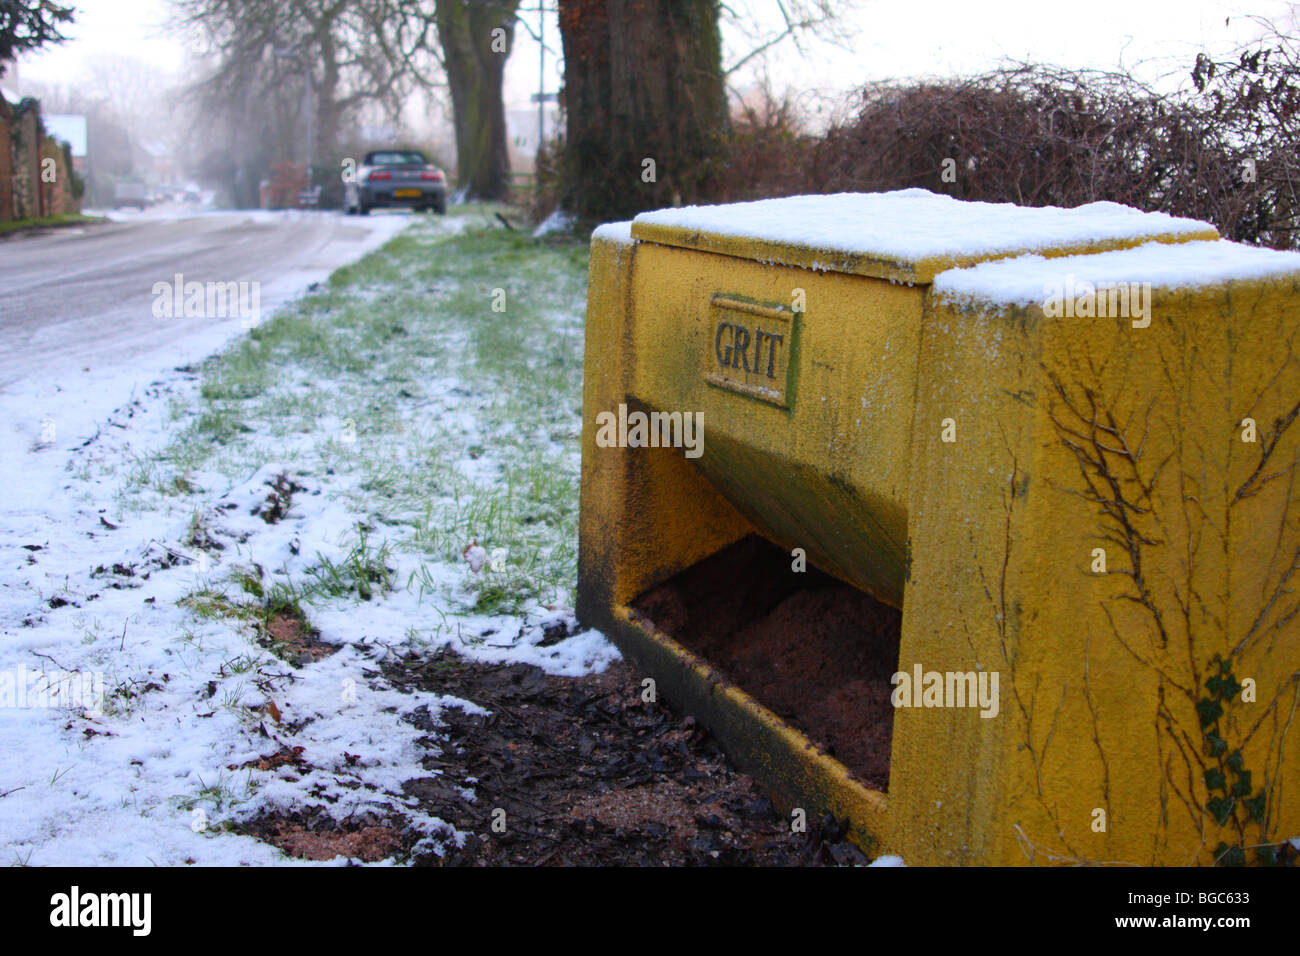 A roadside grit bin on a road in the U.K. - Stock Image